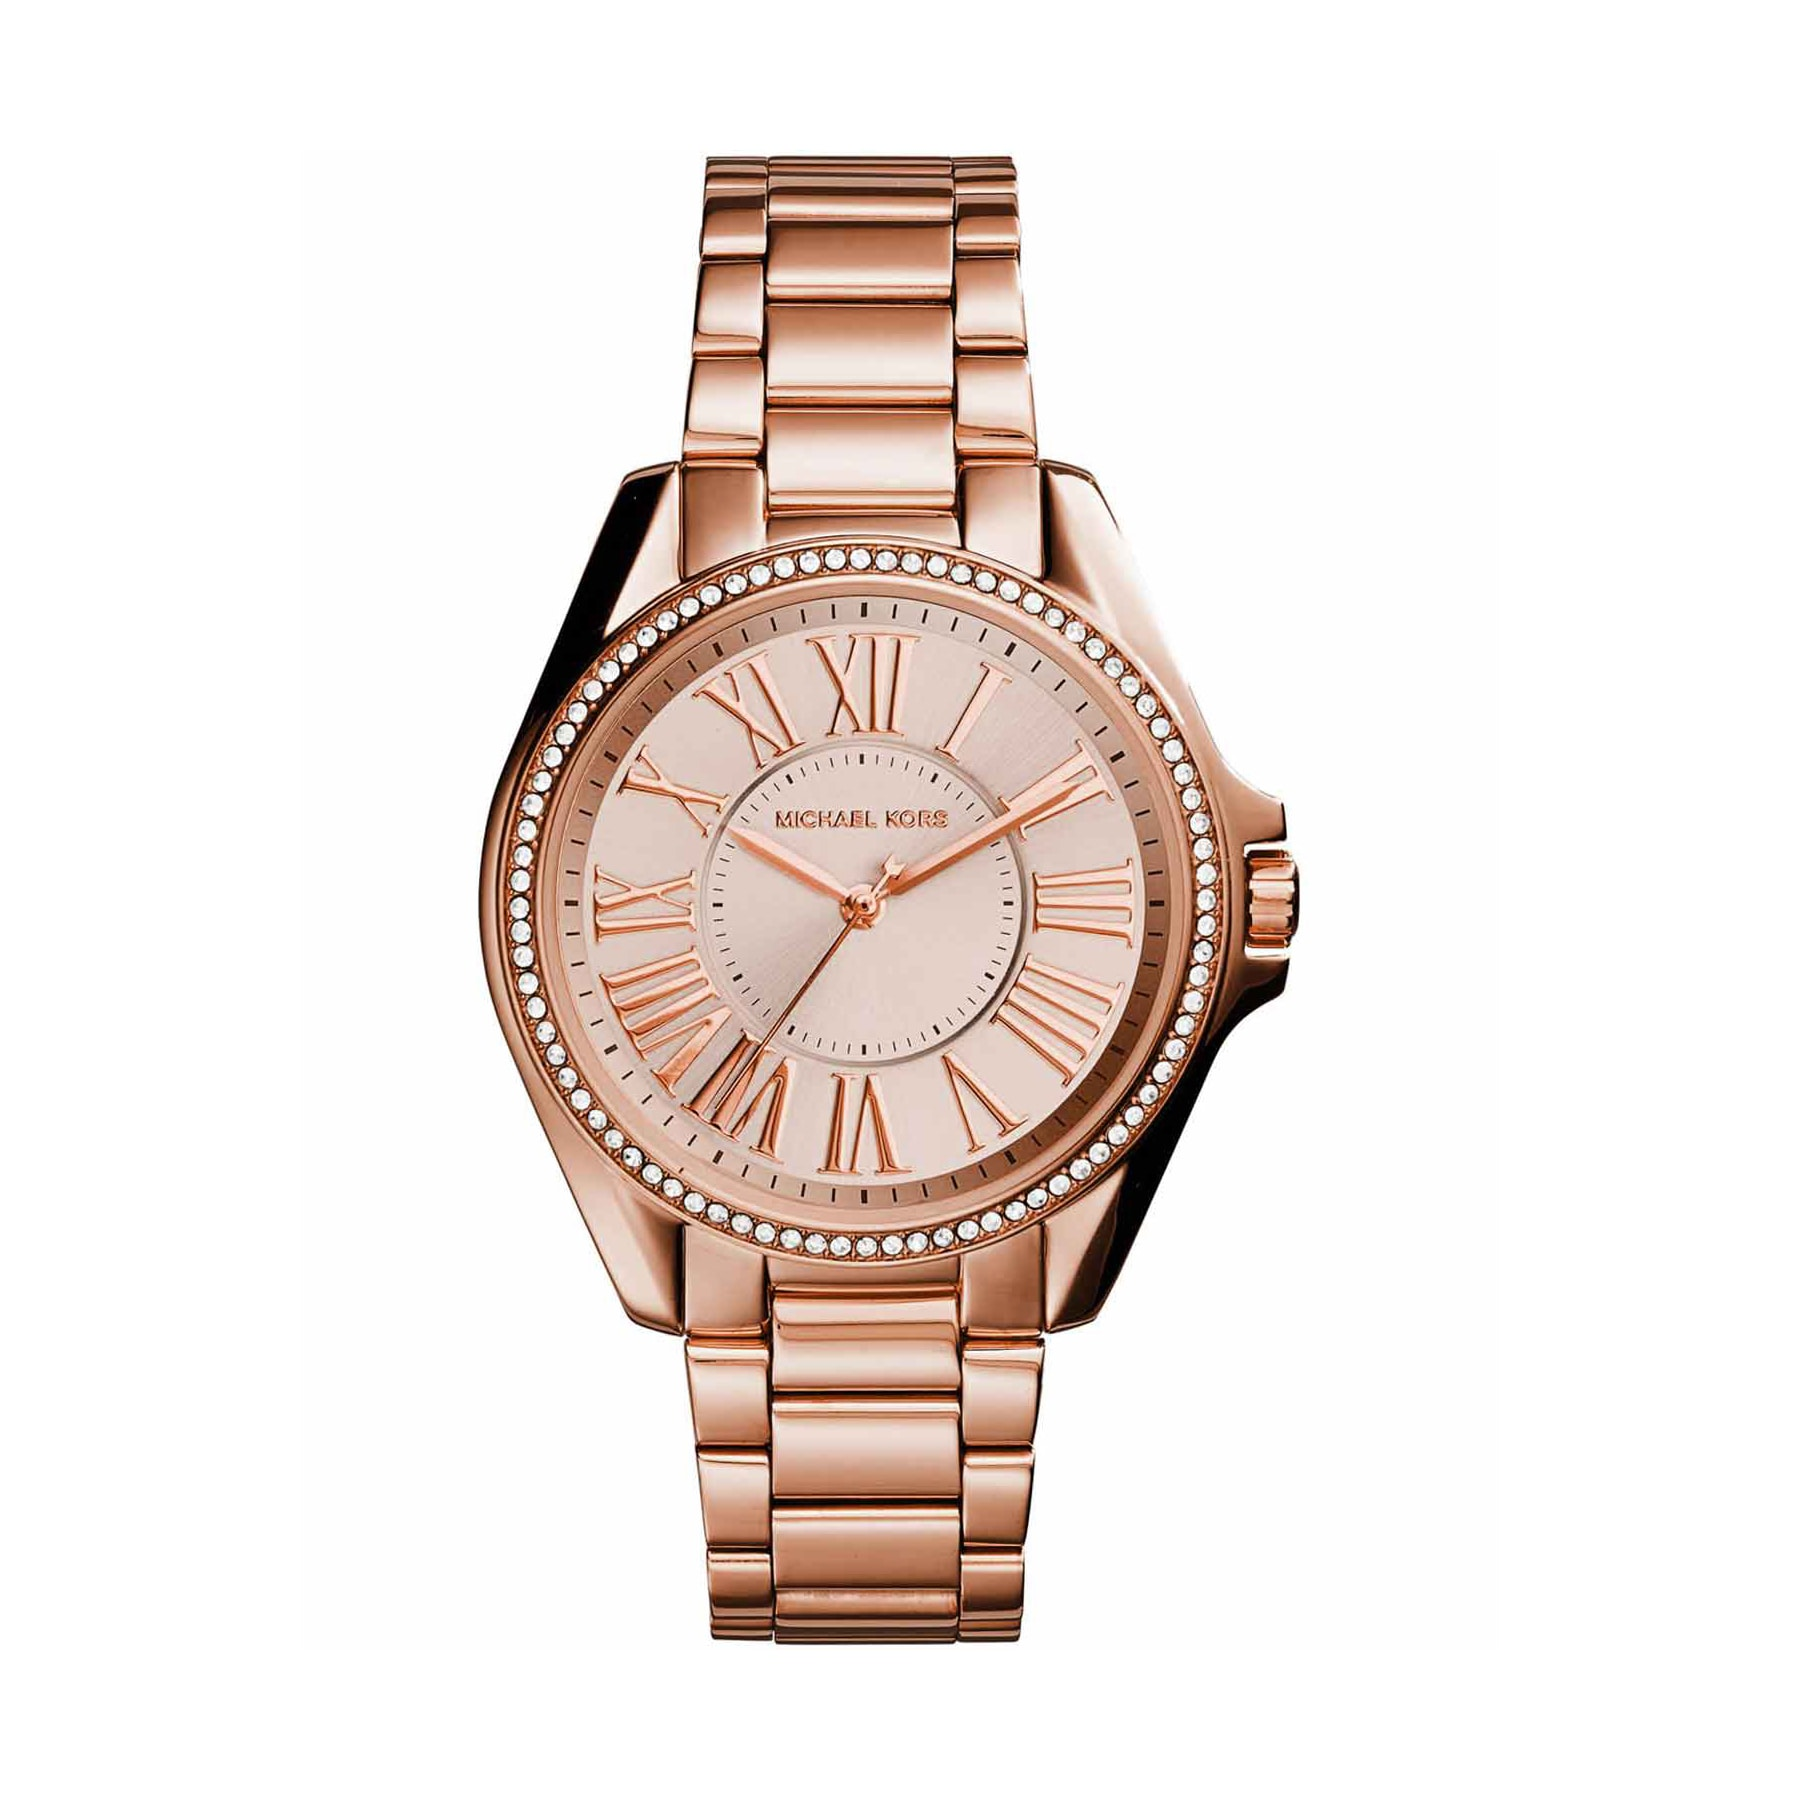 fdbbfc92454f Shop Michael Kors Women s Kacie Rose Gold Dial Rose Gold-Tone Stainless  Steel Bracelet Watch And Bracelet Set - Free Shipping Today - Overstock -  13447626